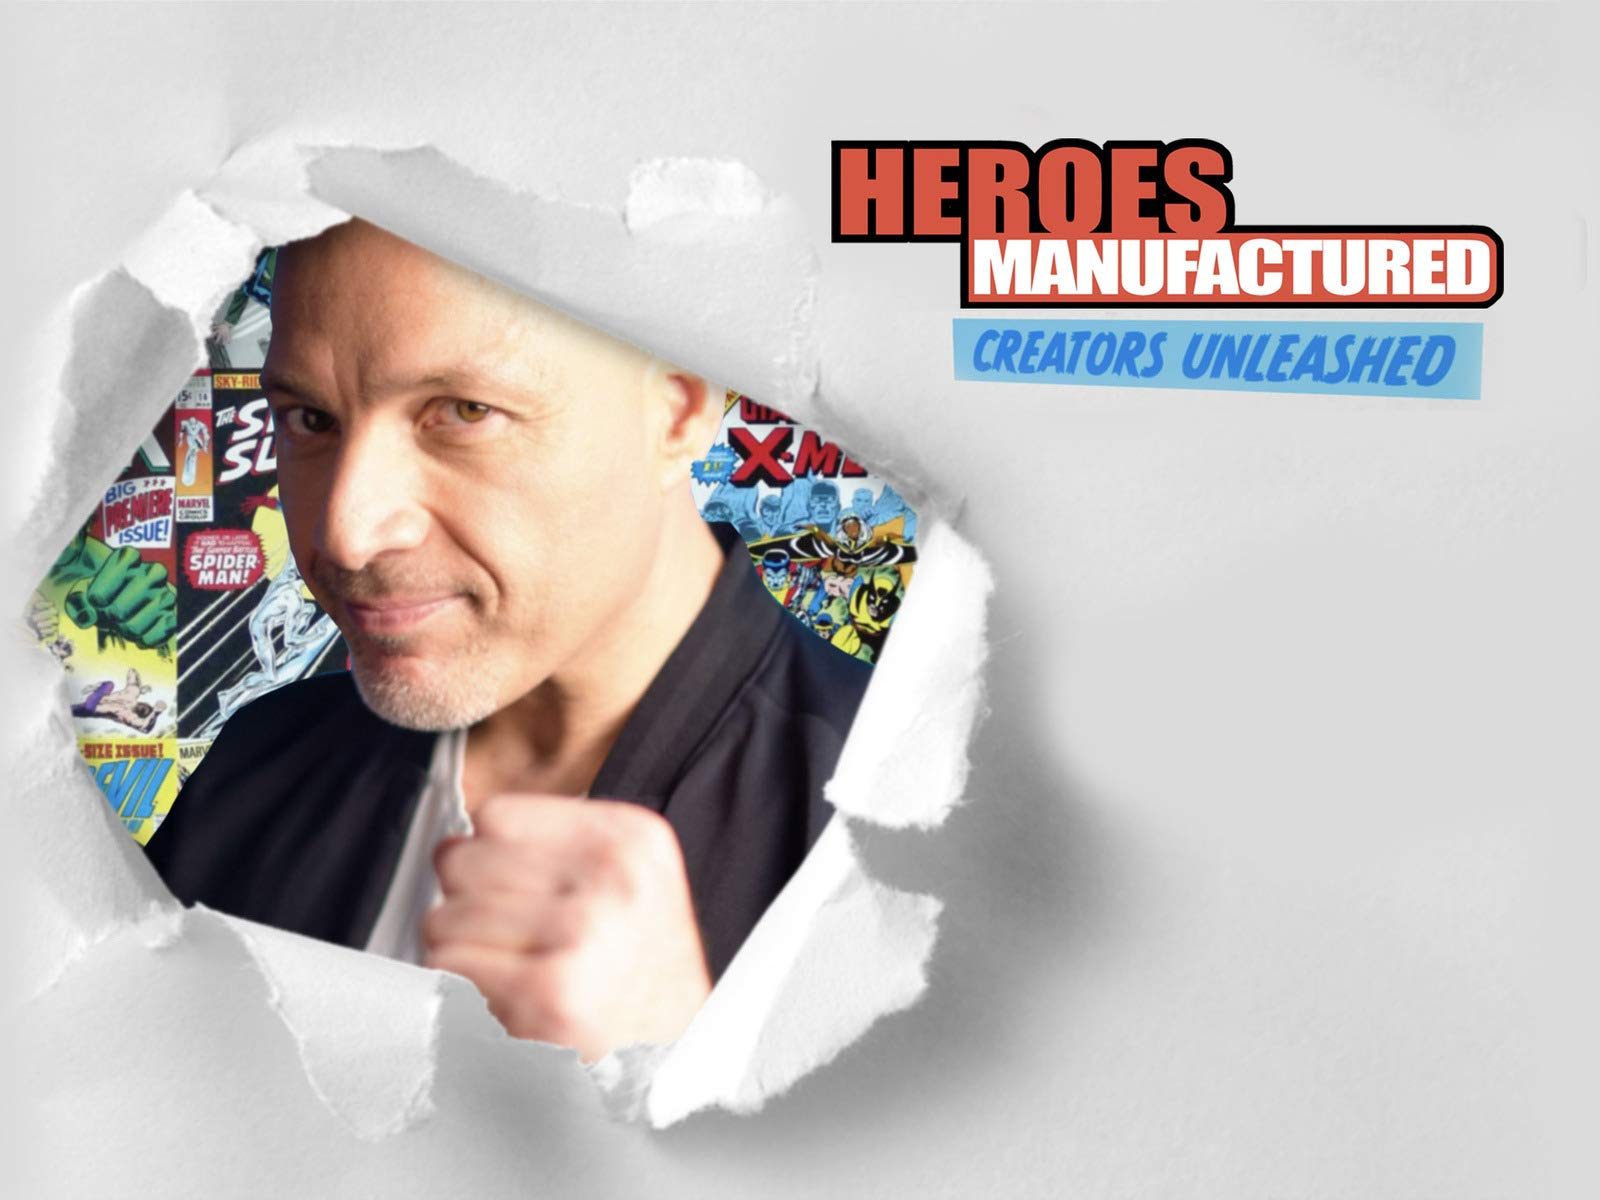 Heroes Manufactured: Creators Unleashed